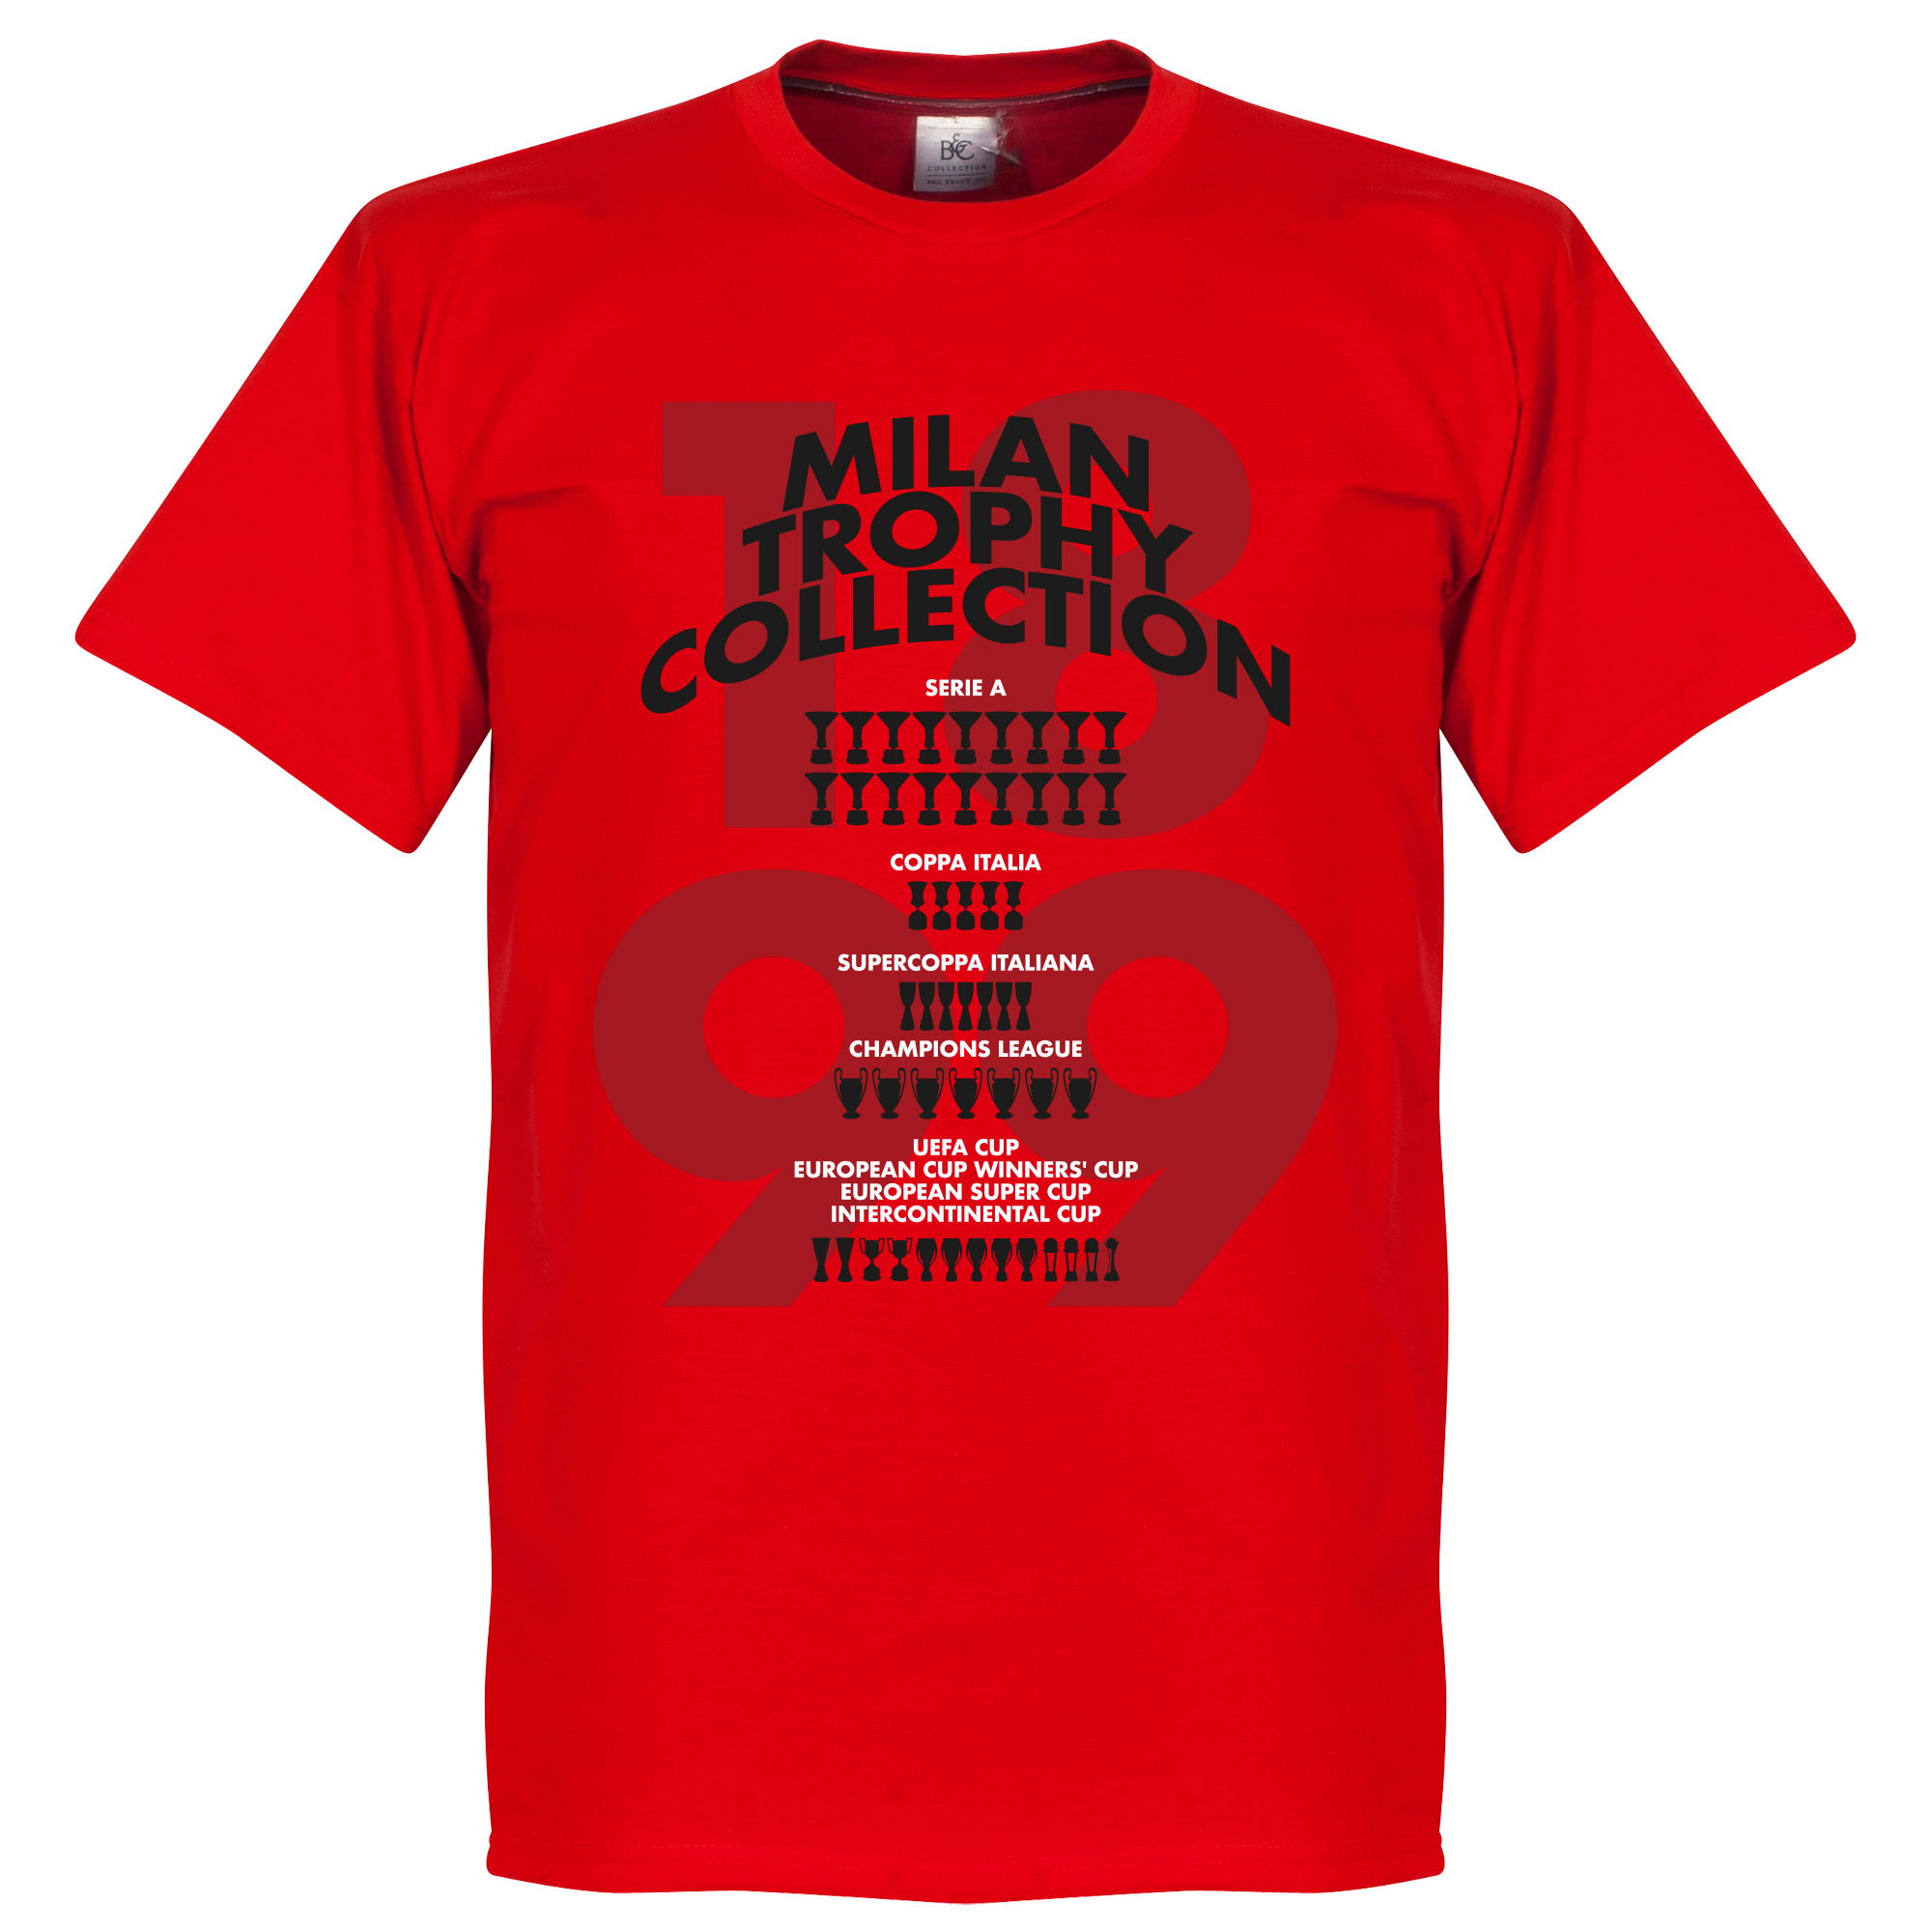 Milan Trophy Collection Tee - Red - L